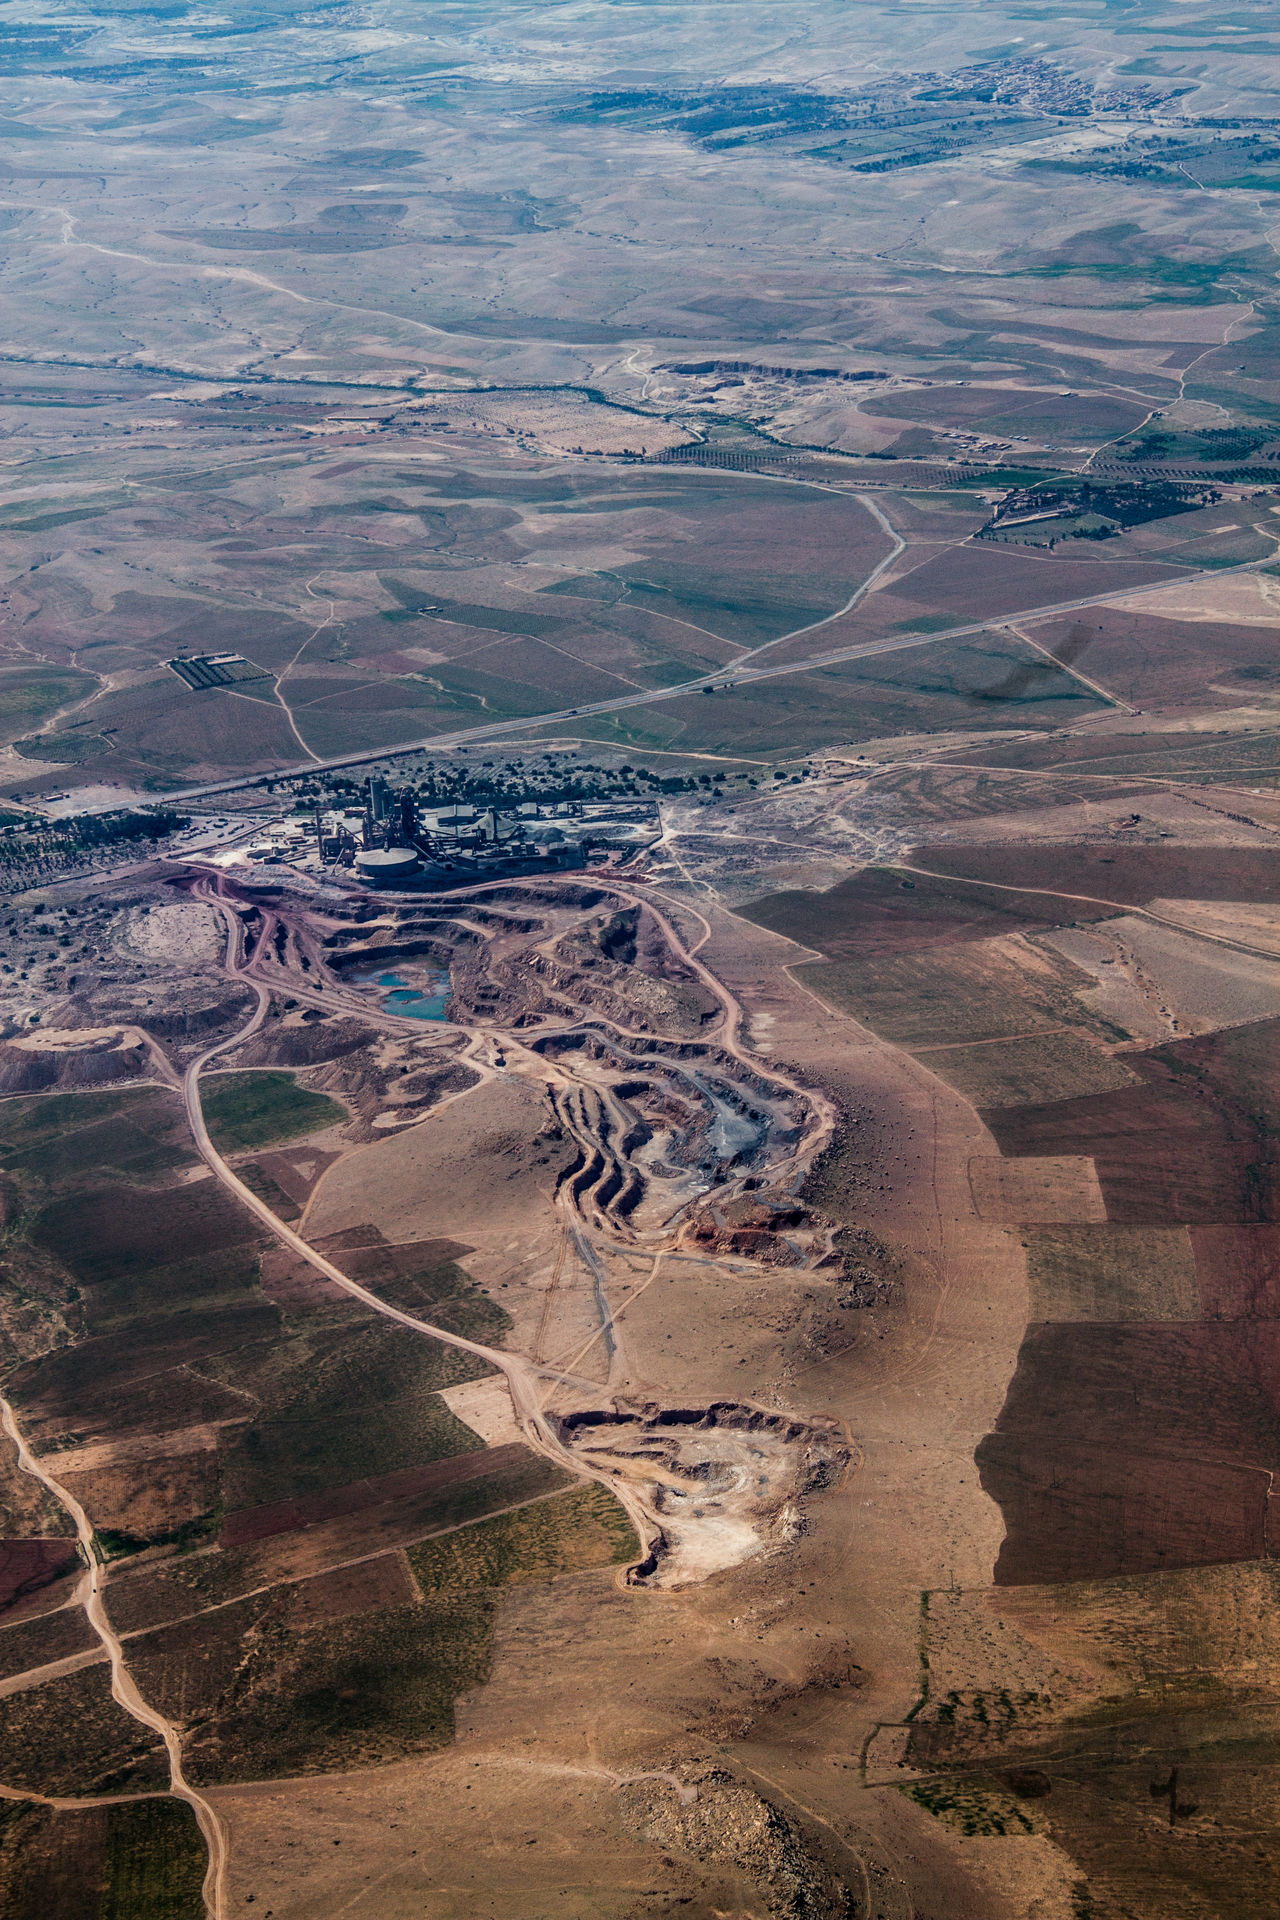 Aerial View Agriculture Arid Climate Business Finance And Industry City Landscape Mining Industry Outdoors Sand Scenics Travel World From Above